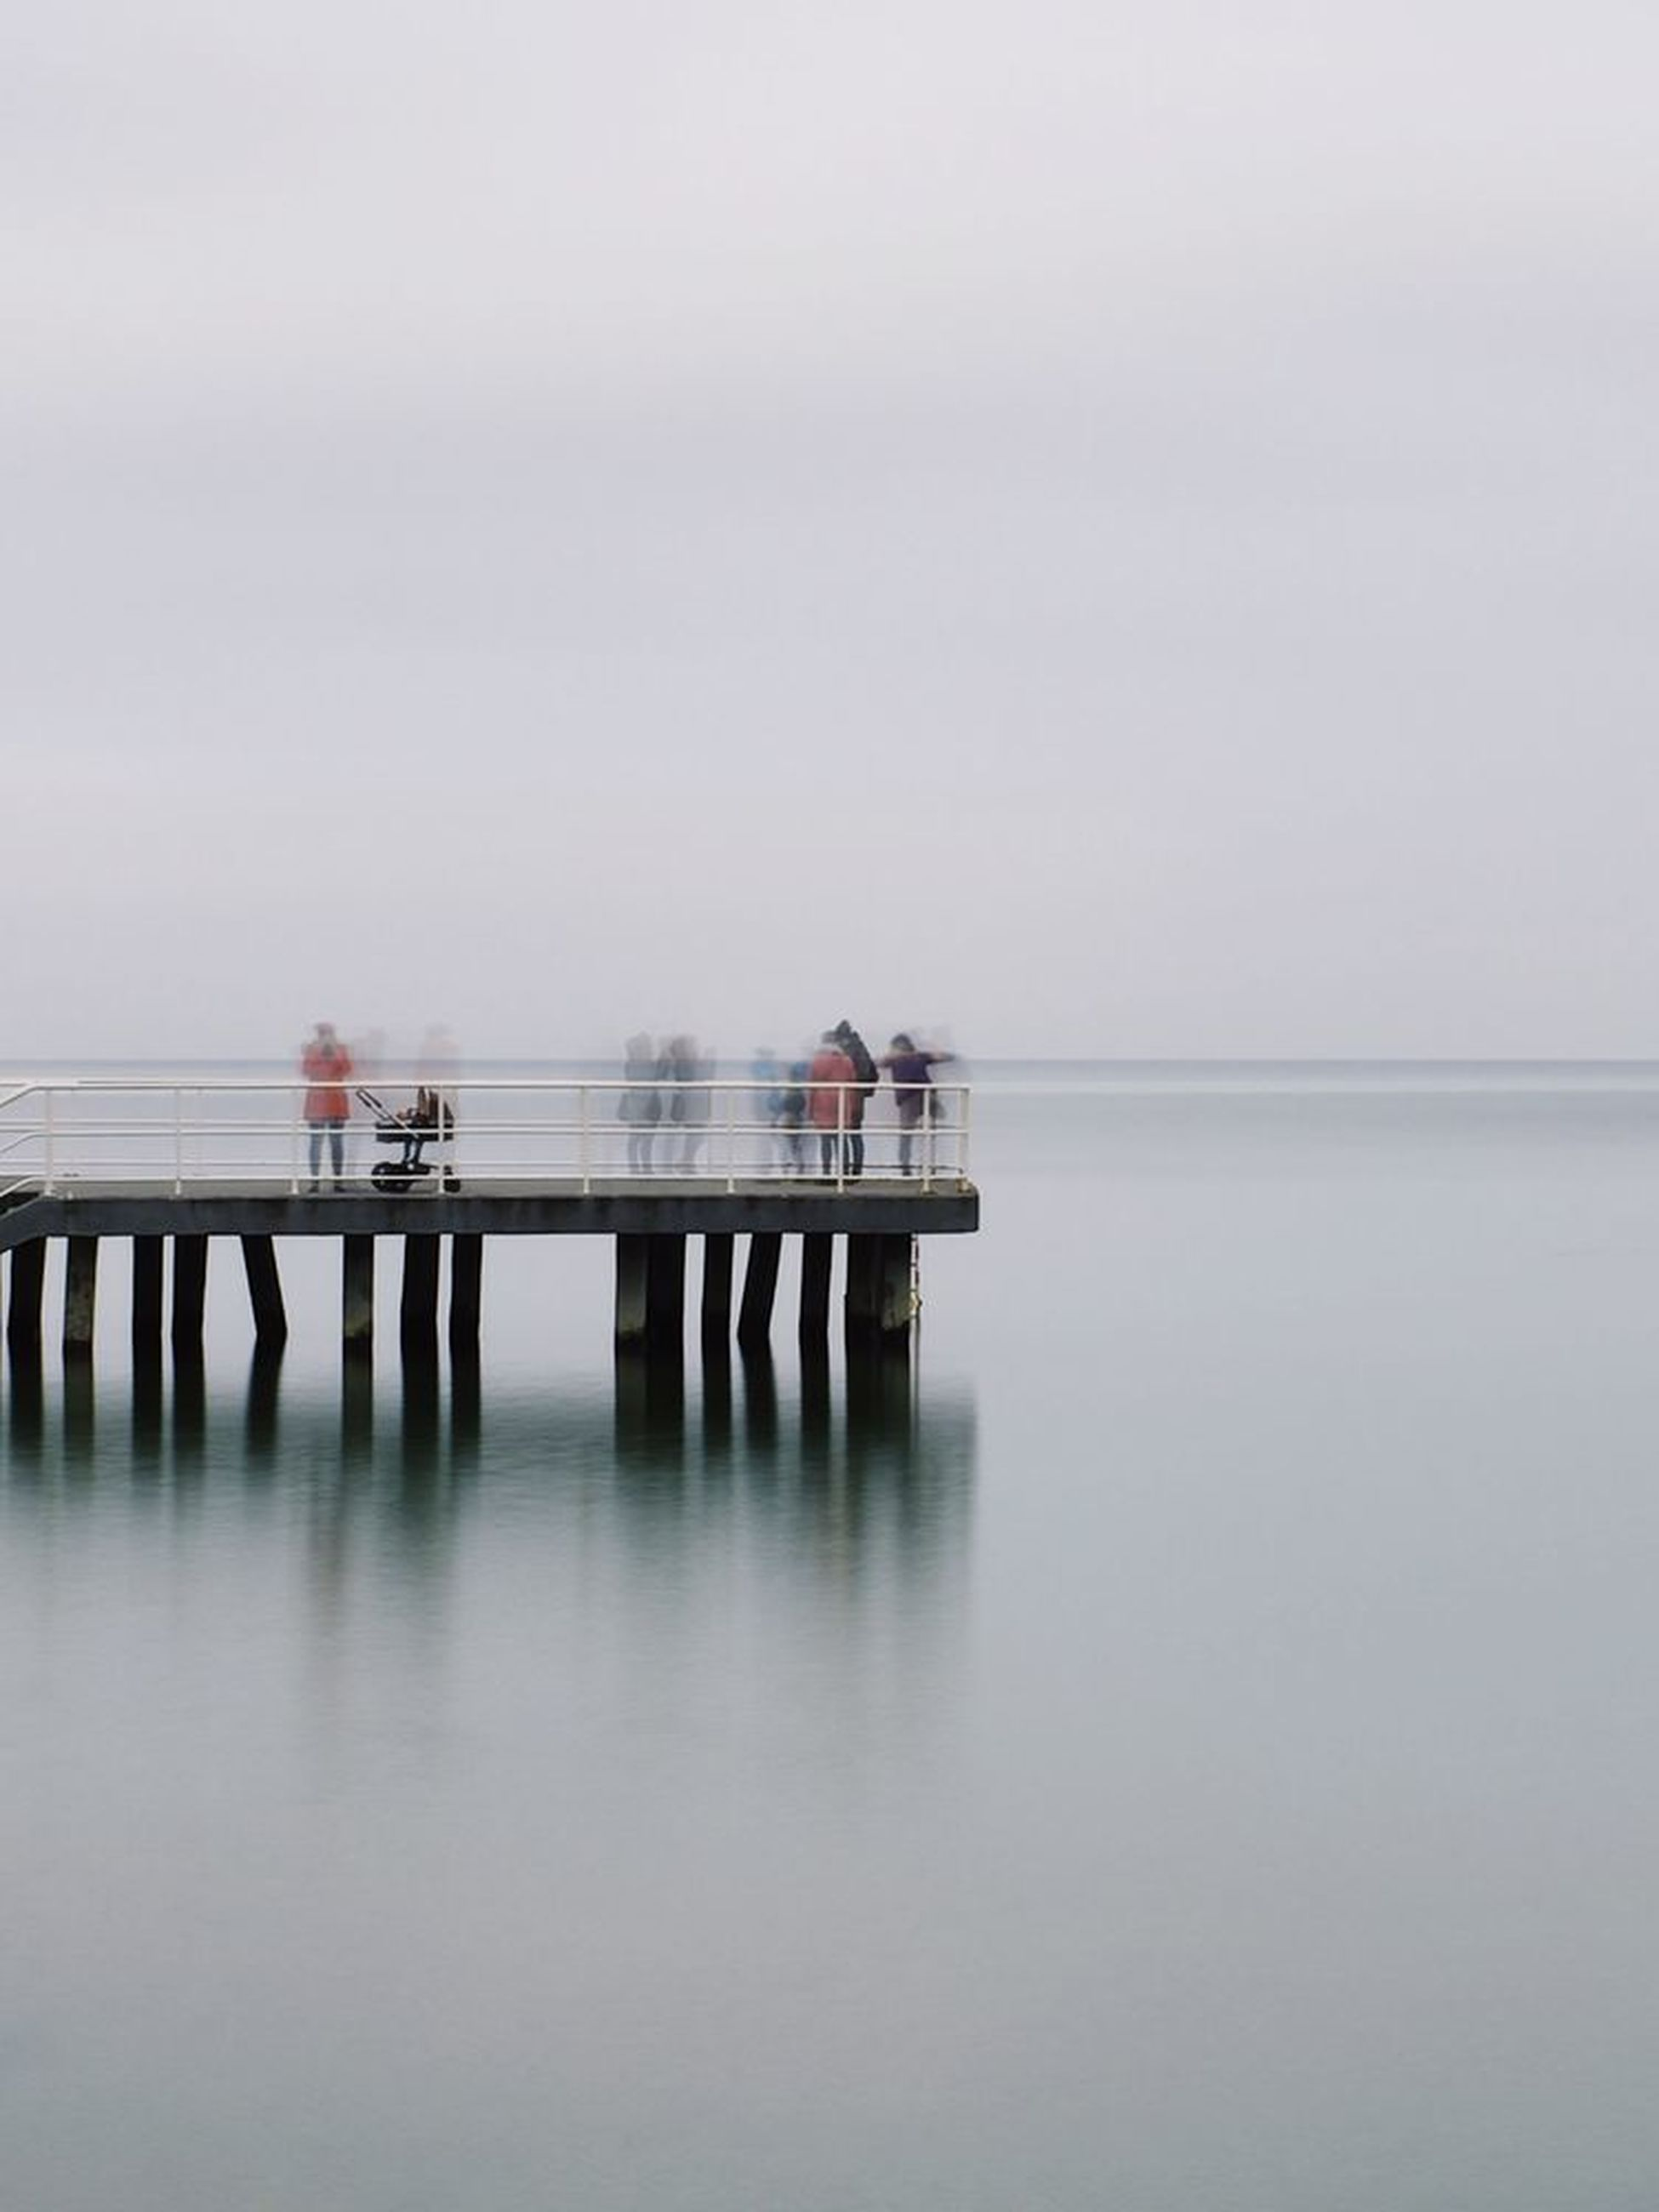 sea, water, outdoors, nature, sky, tranquility, adult, women, people, horizon over water, day, men, togetherness, young adult, wheelchair access, lifeguard hut